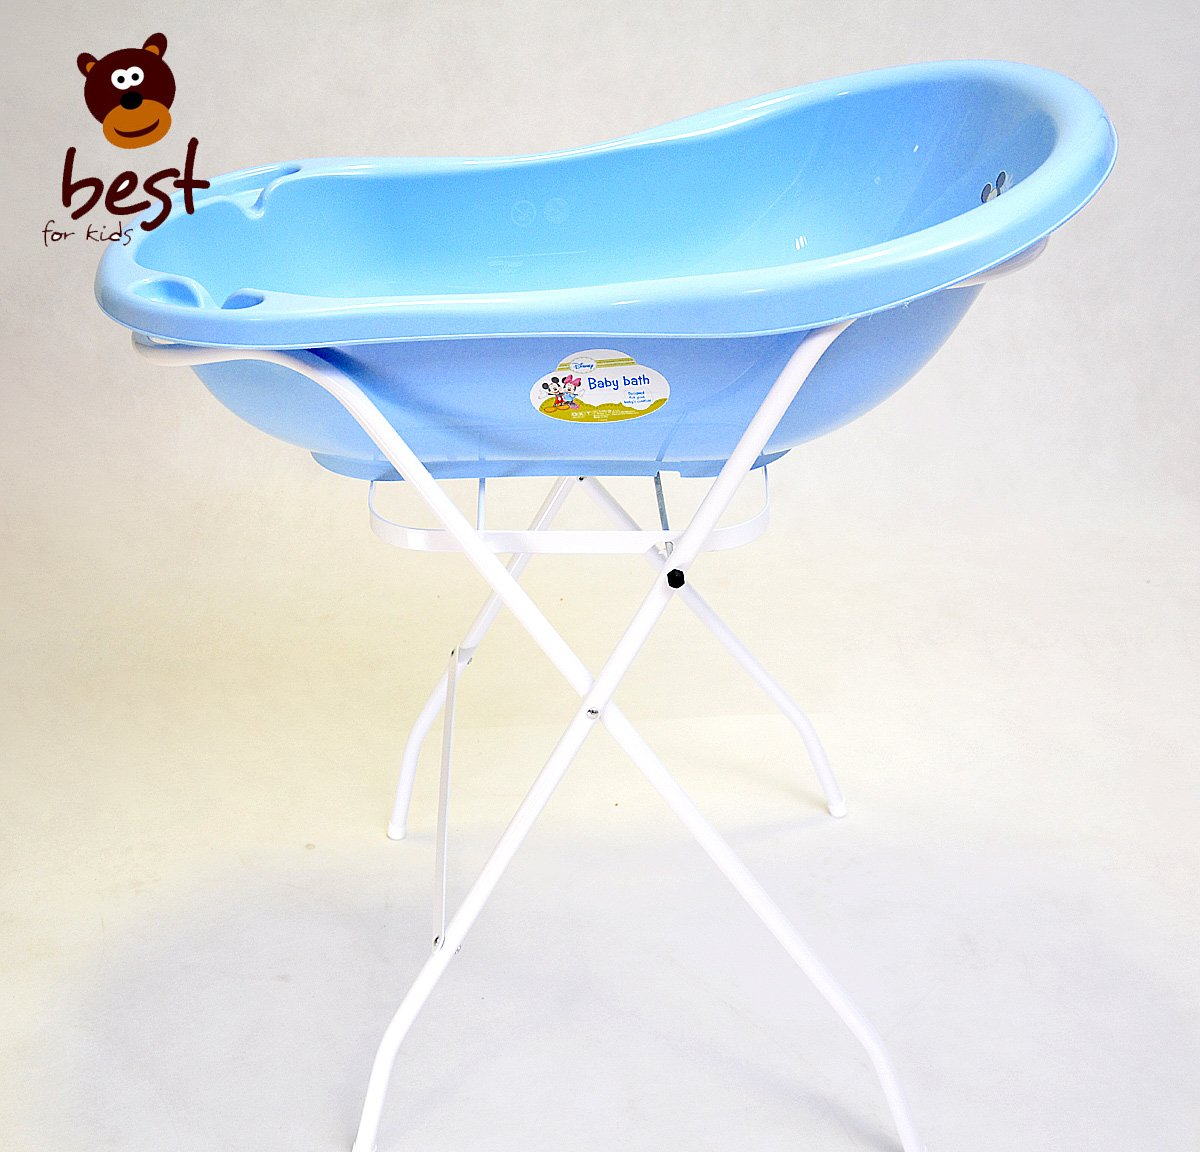 Best for Kids Universal Stand for Baby Bath Tub 84/100 cm, with or ...